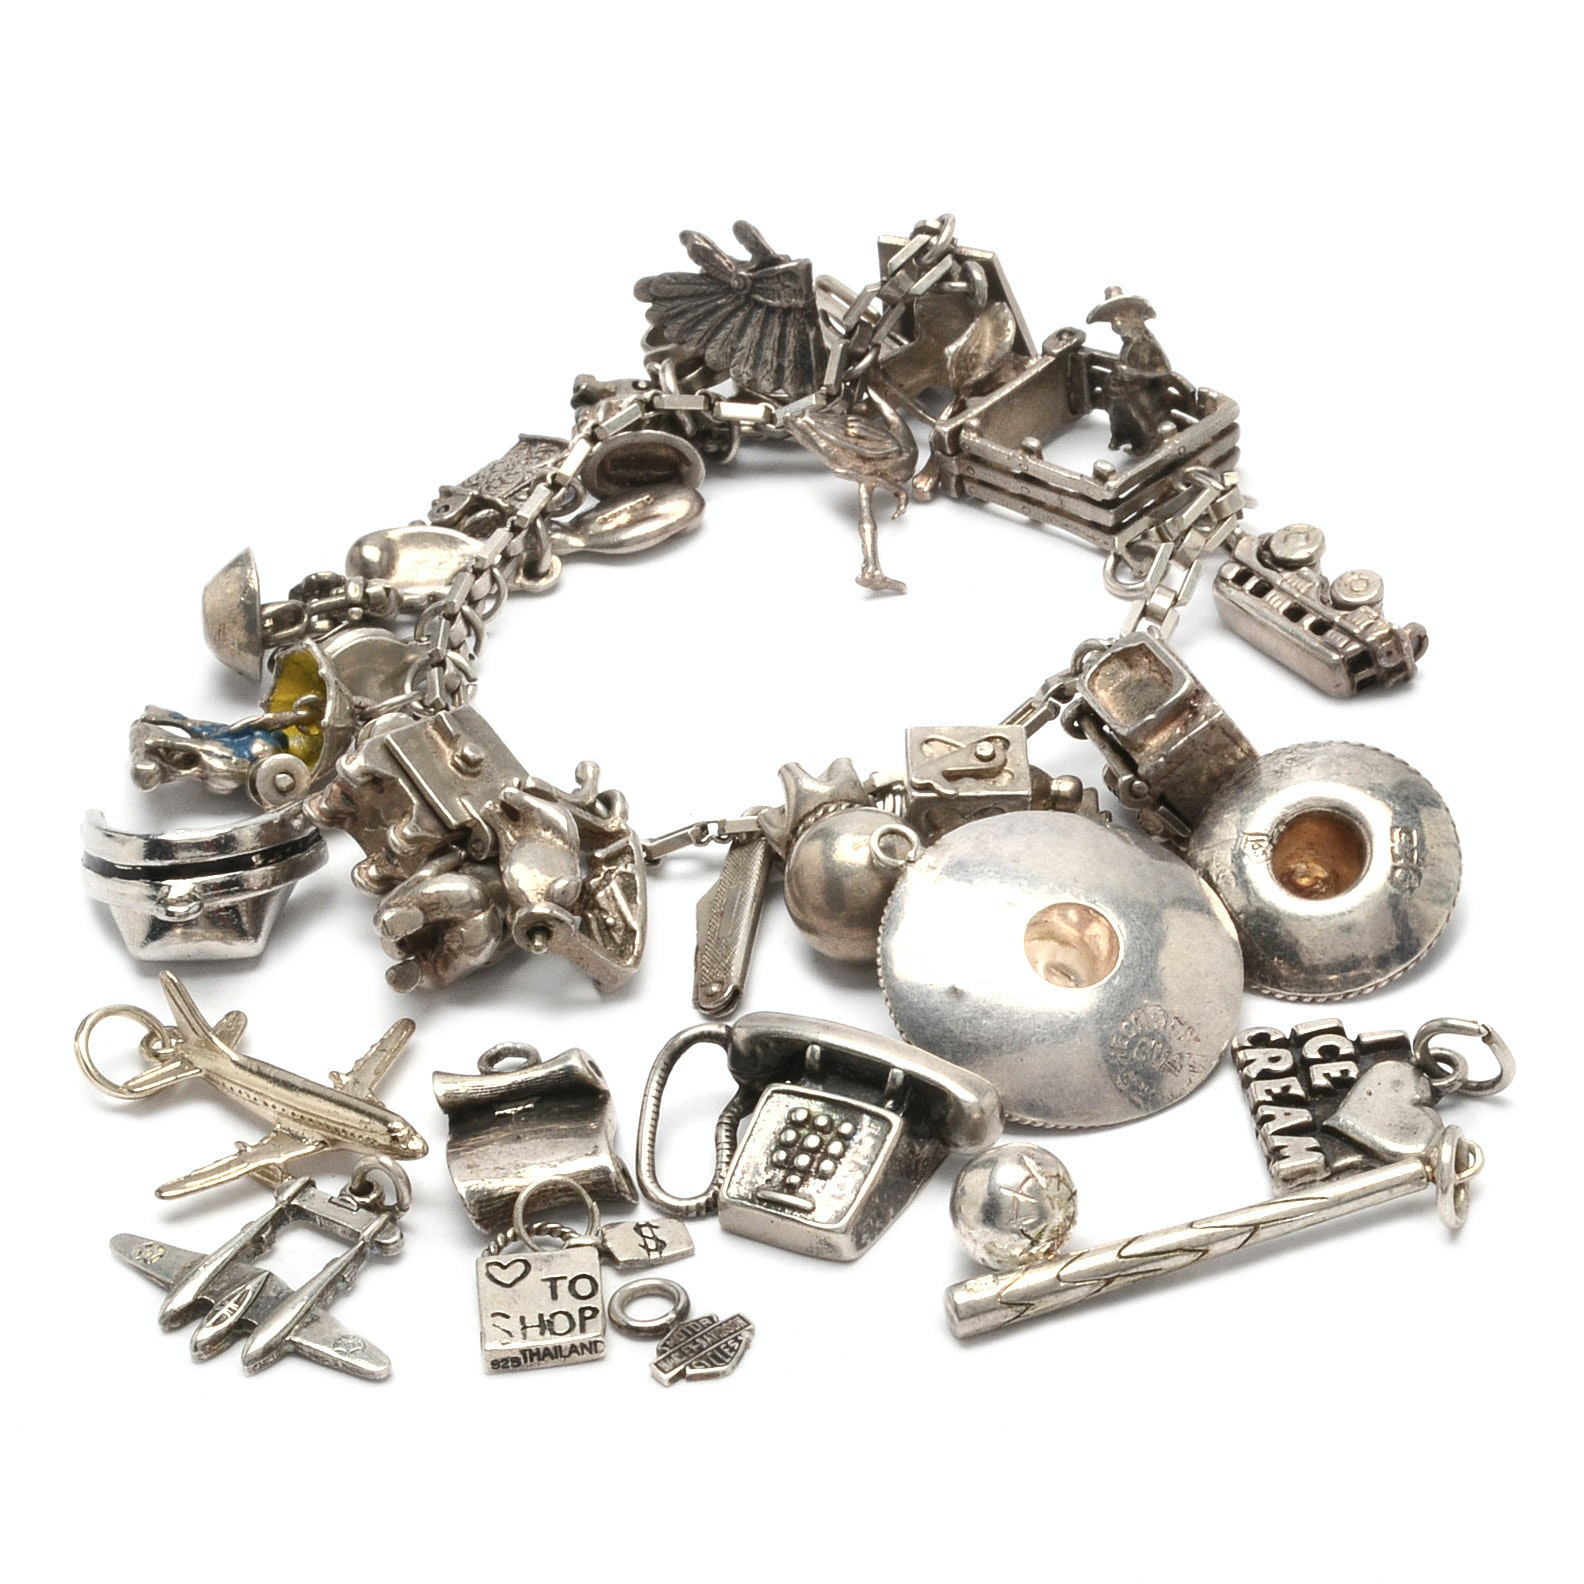 Vintage Sterling Silver Charm Bracelet and Loose Charms